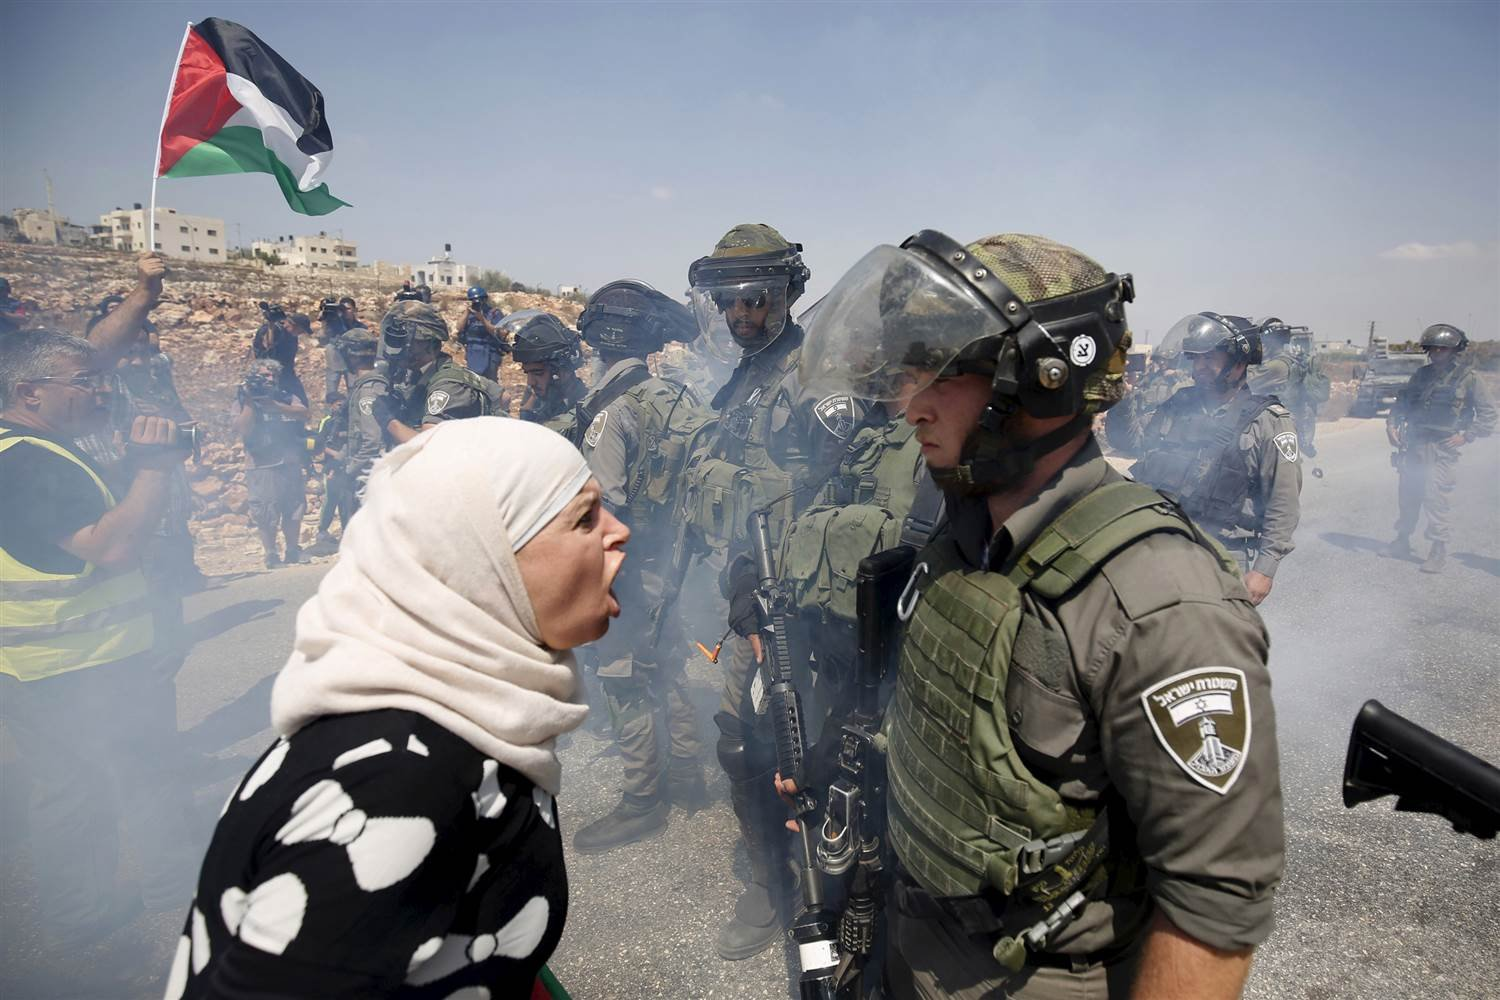 A Palestinian woman argues with an Israeli border police officer during a protest against Jewish settlements in the West Bank village of Nabi Saleh on Sept. 4, 2015. Mohamad Torokman / Reuters